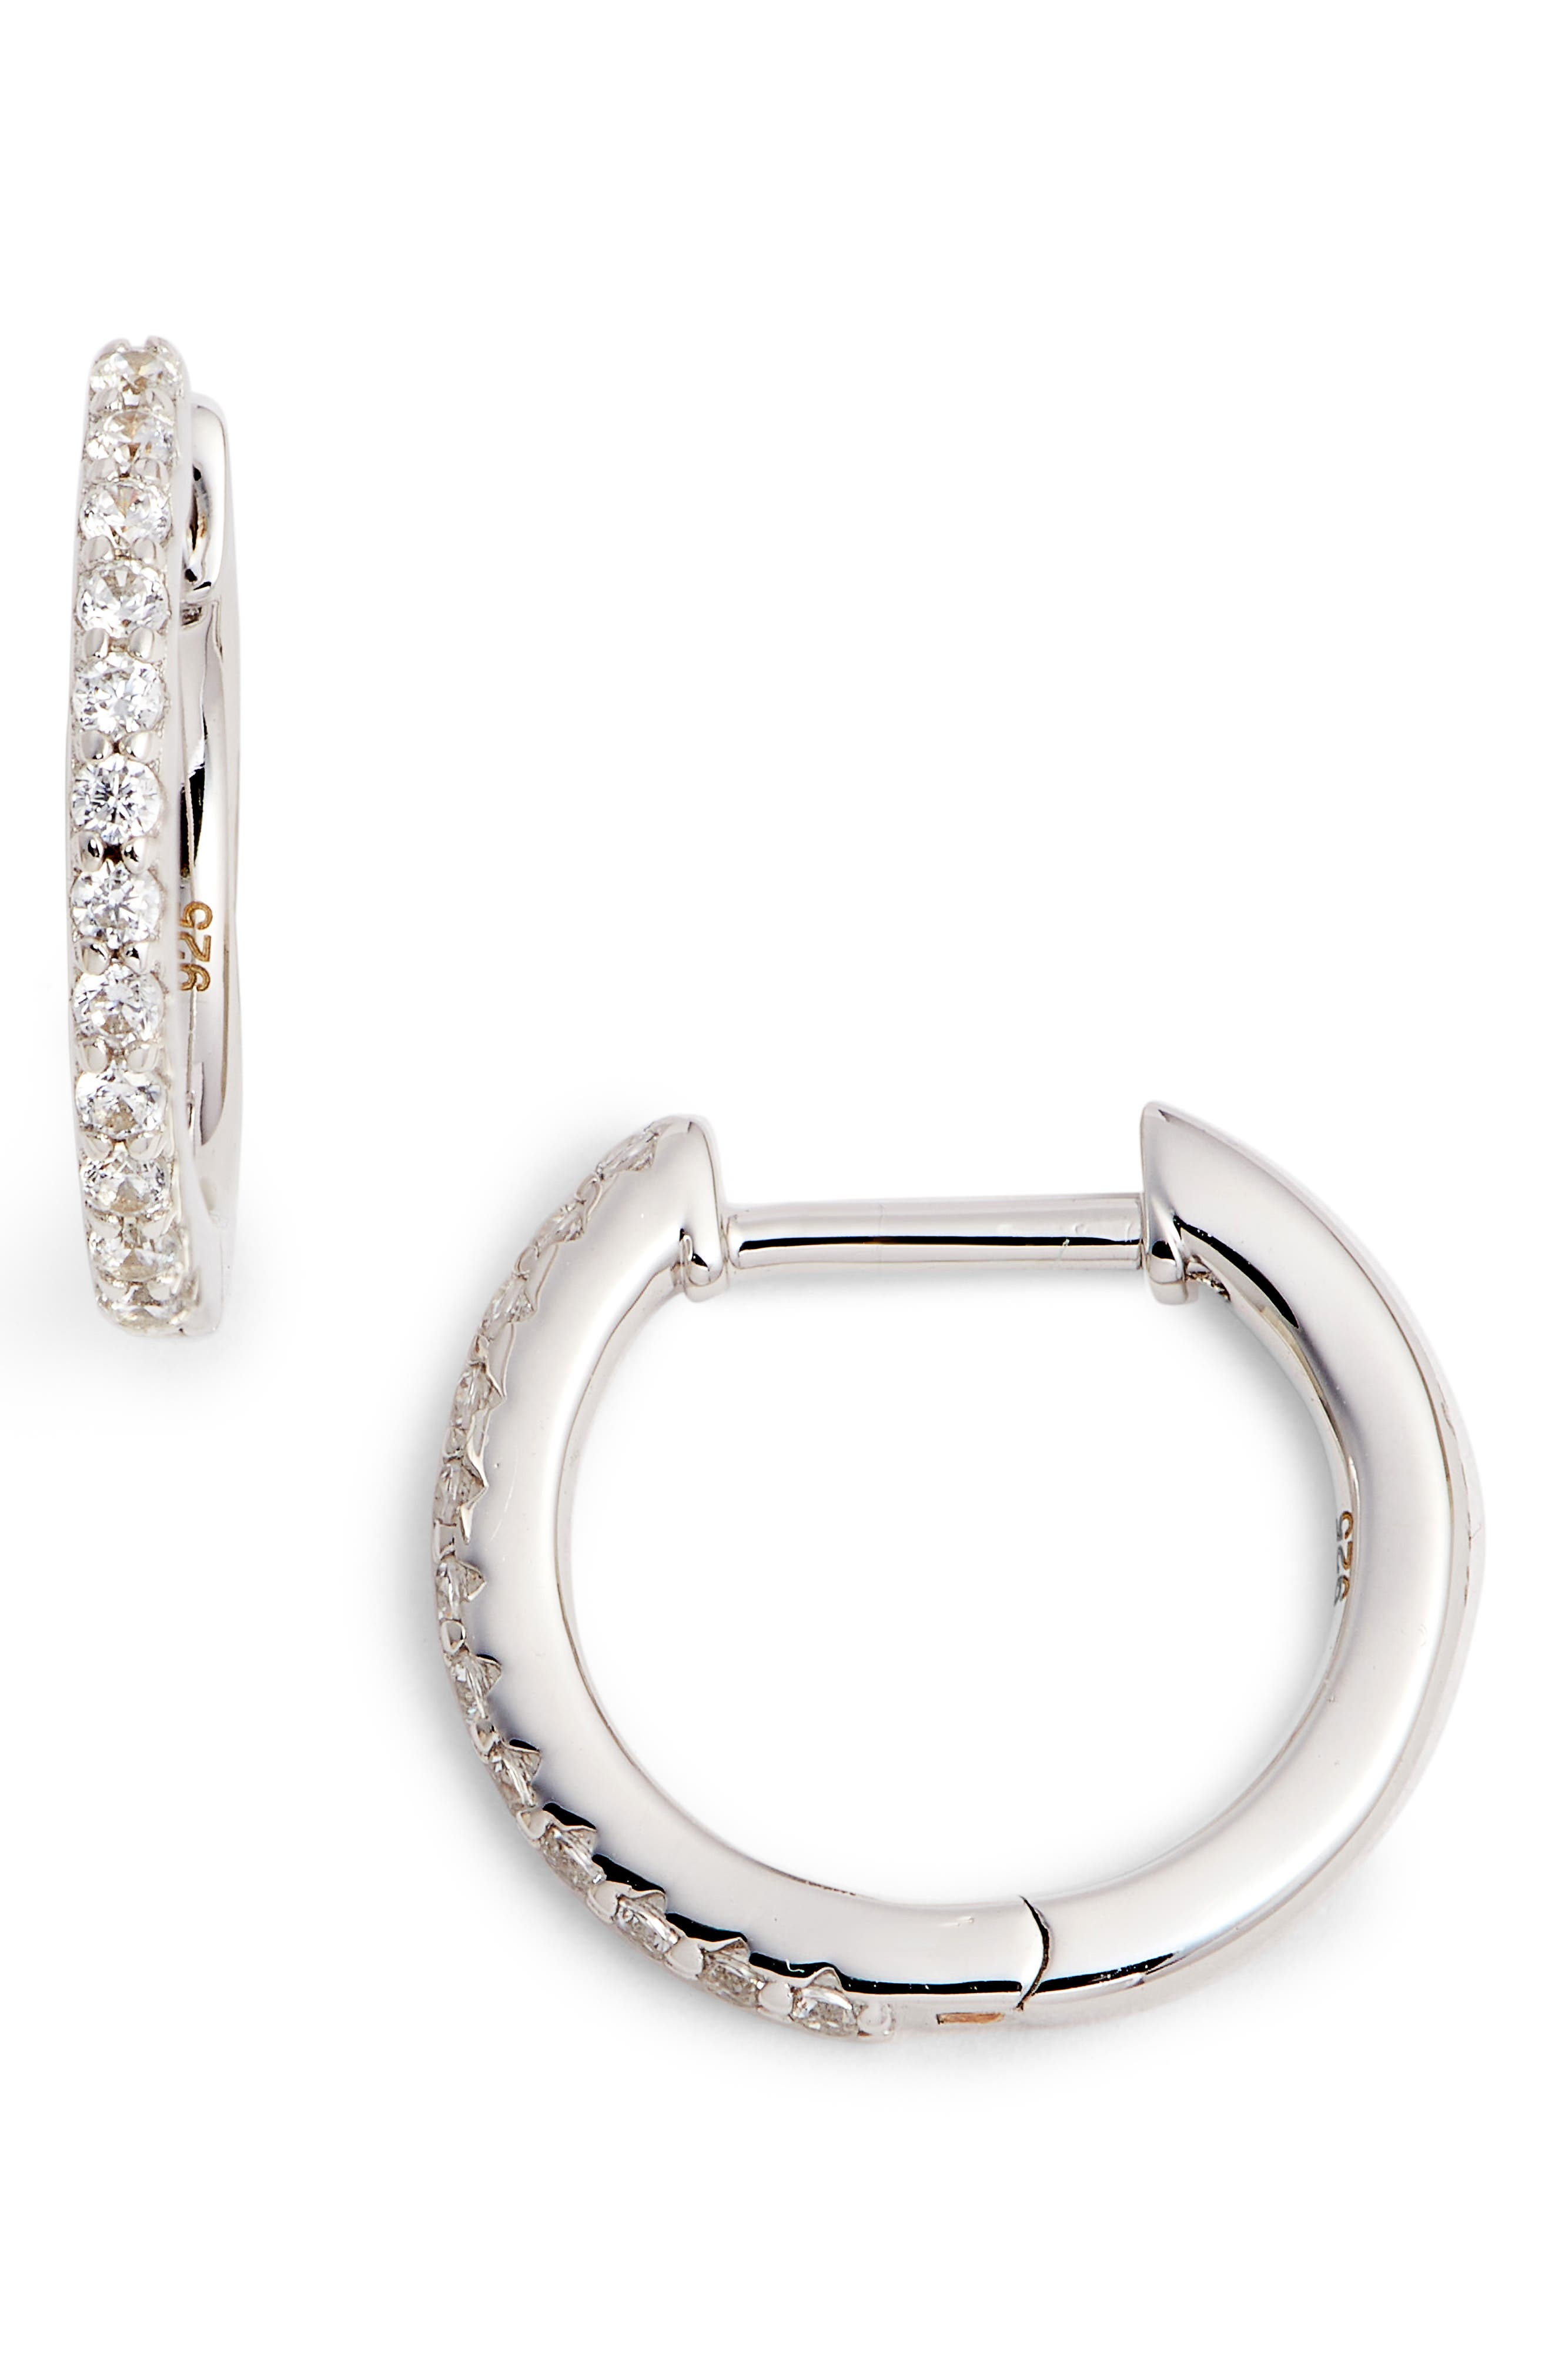 Round Hoop Earrings,                         Main,                         color, SILVER/ CLEAR